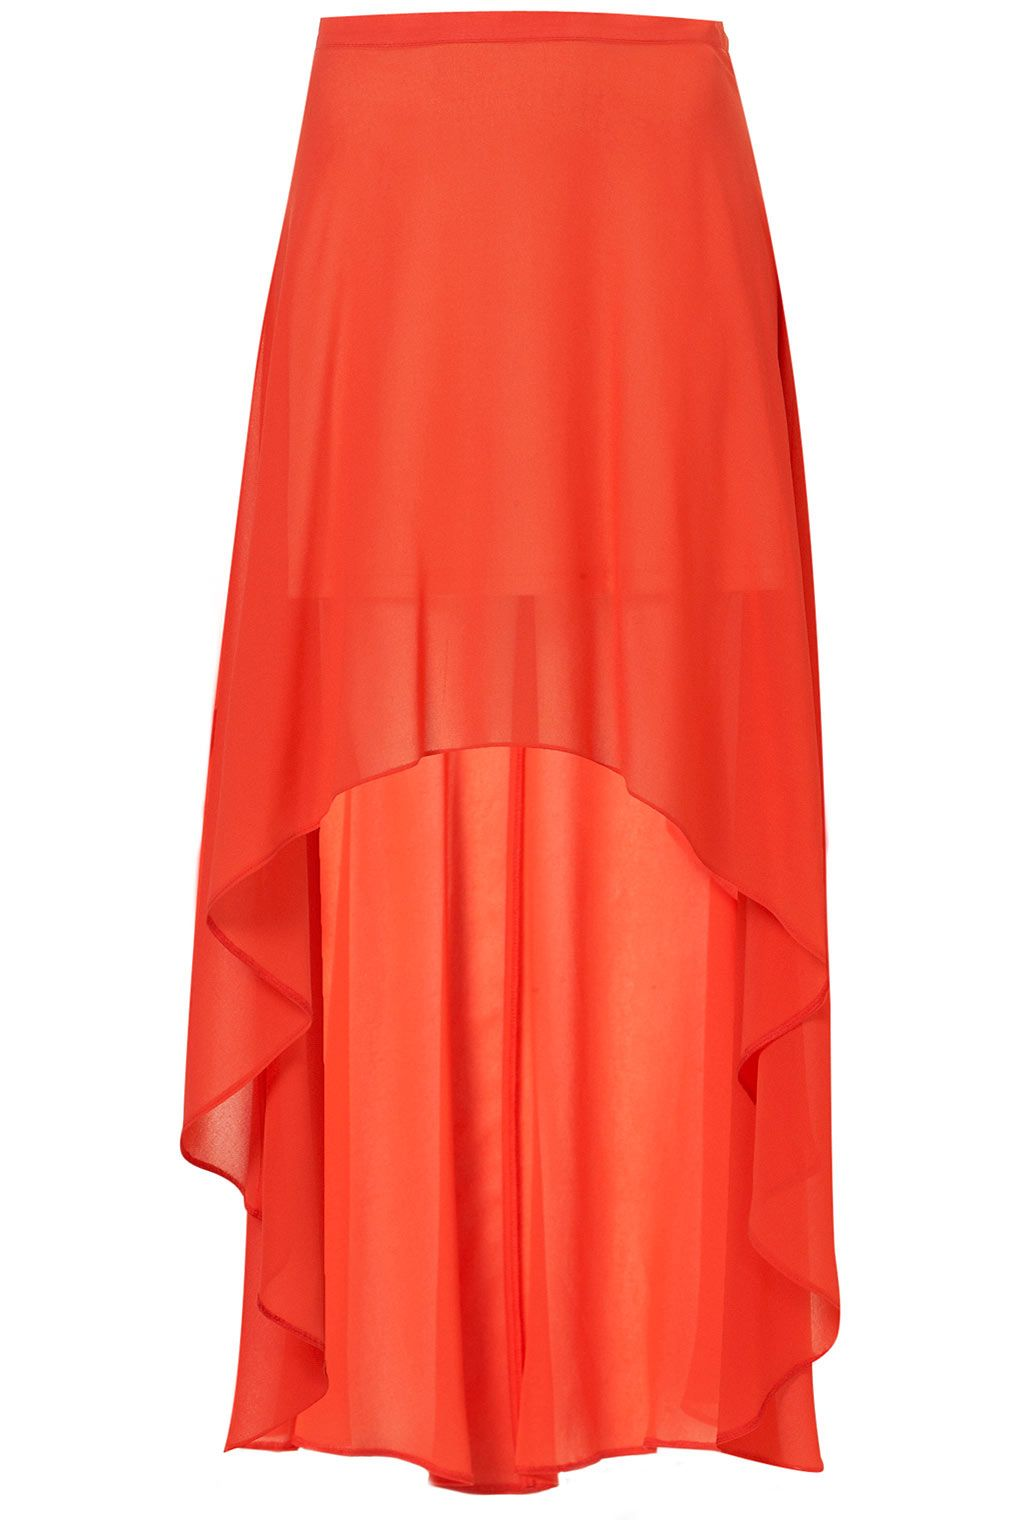 TOPSHOP | RED DIP BACK MAXI SKIRT